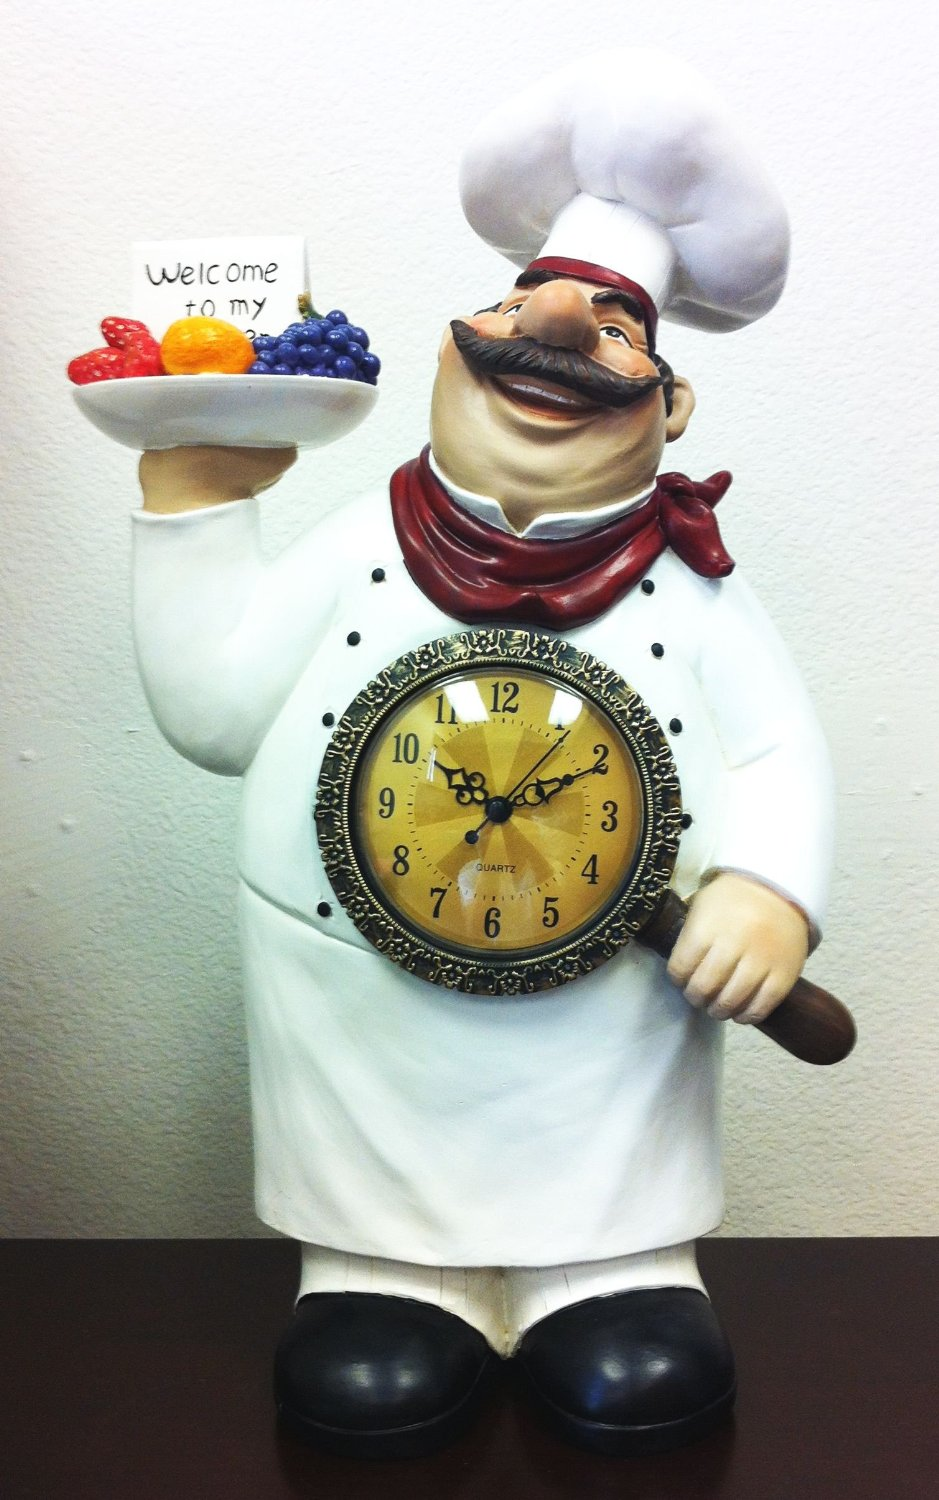 Total Fab Fat Chef Statues A Bit Of Bistro Themed